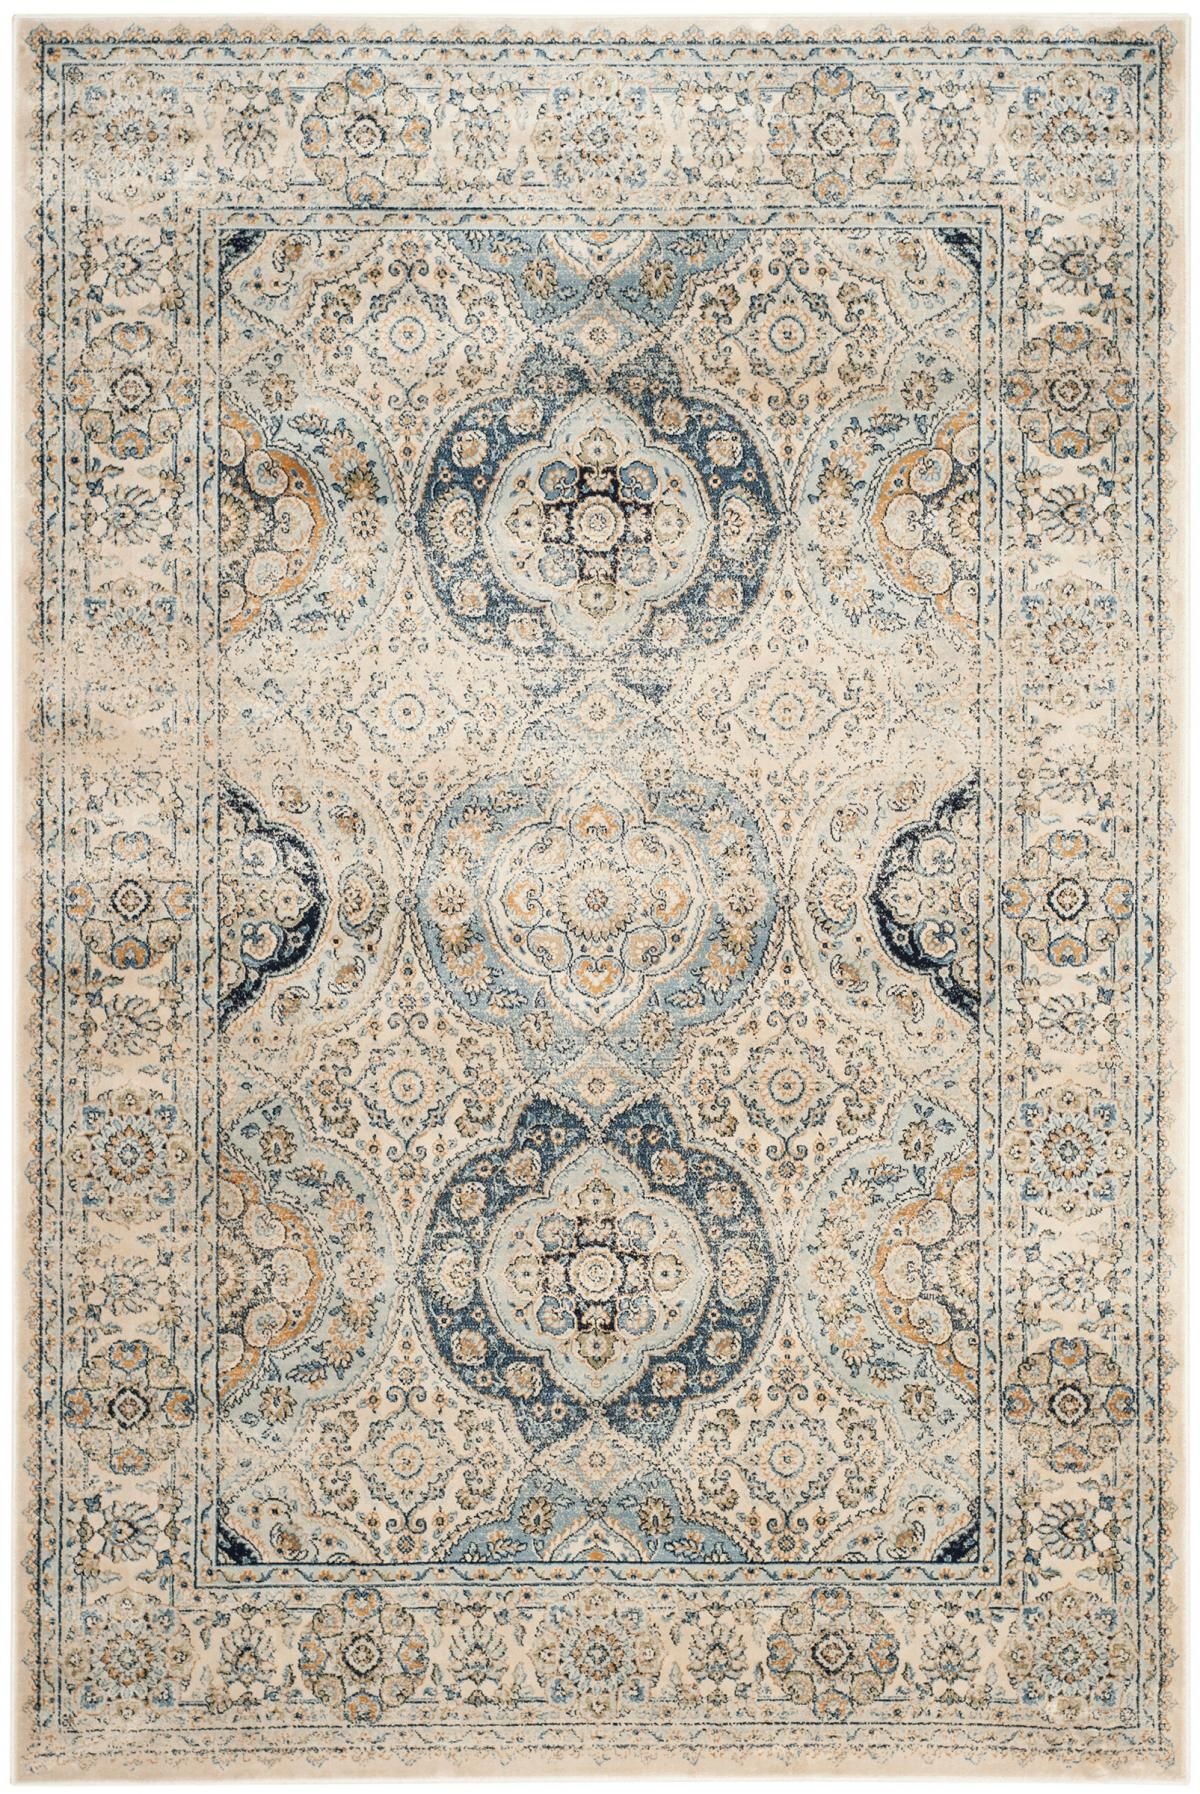 PGV611C Rug From Persian Garden Vintage Collection. The Classic Design Of Antique  Persian Rugs Is